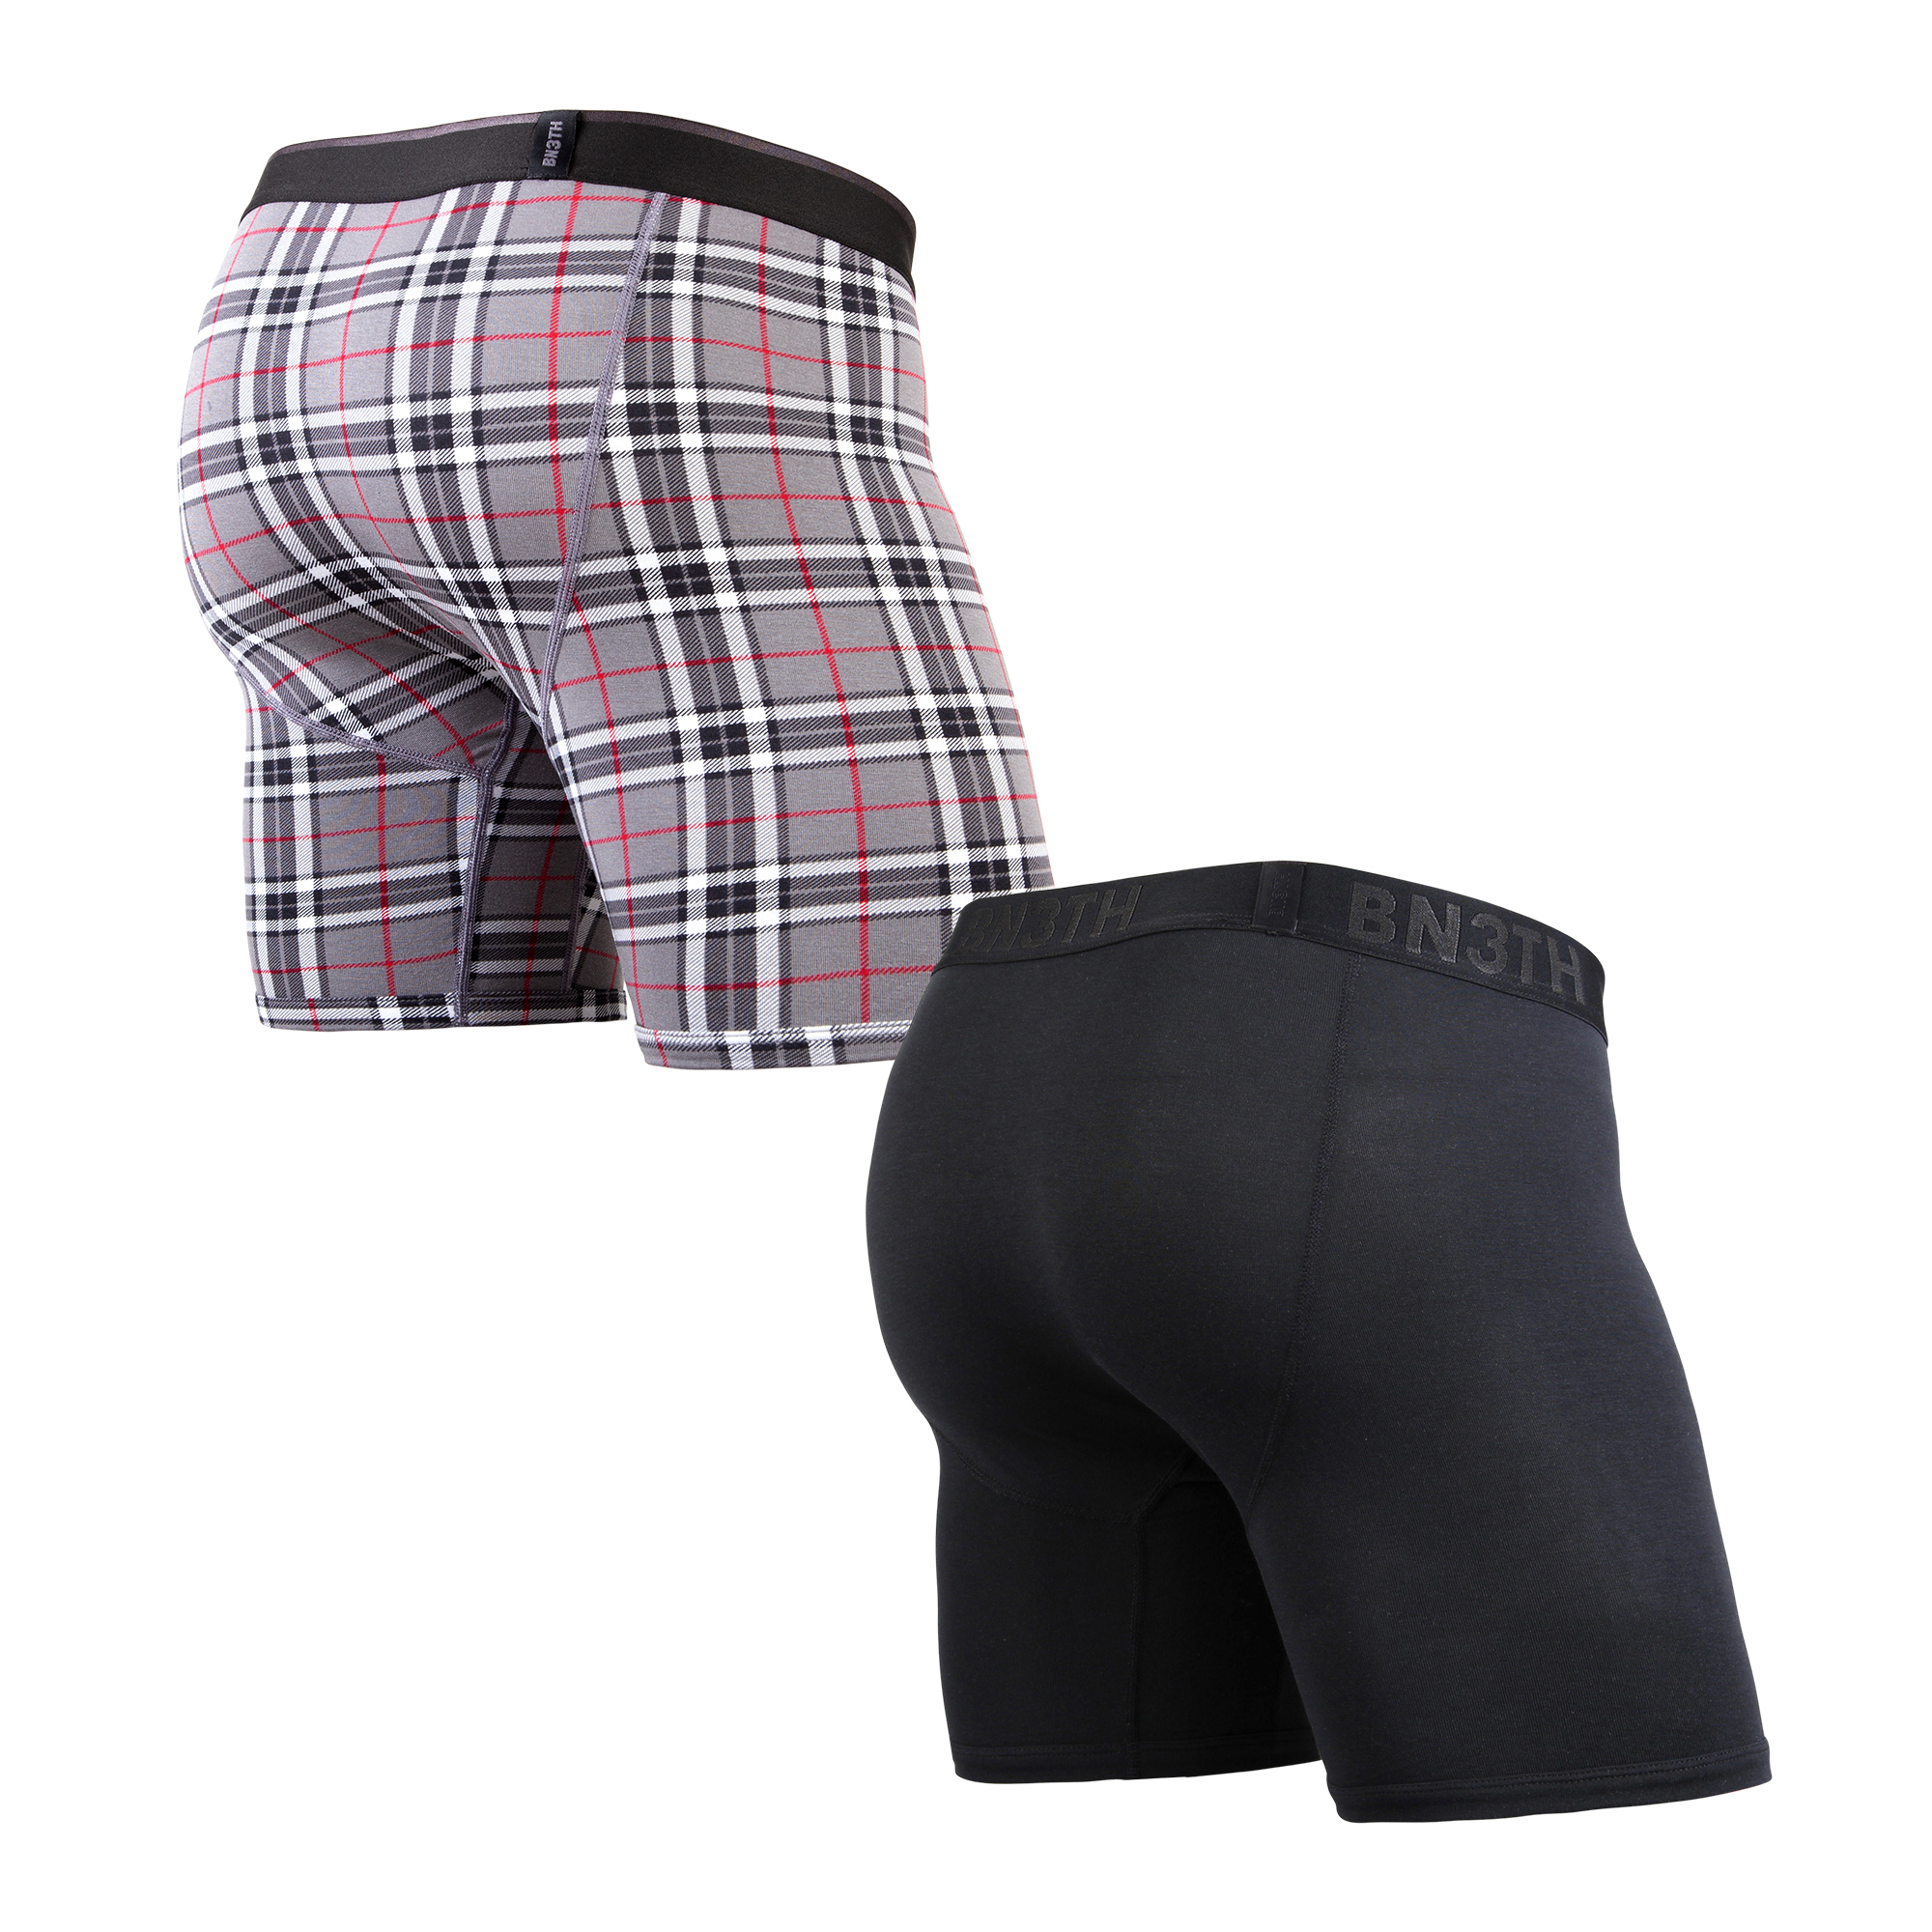 Bn3th Men/'s Classic Boxer Briefs 2 Pack